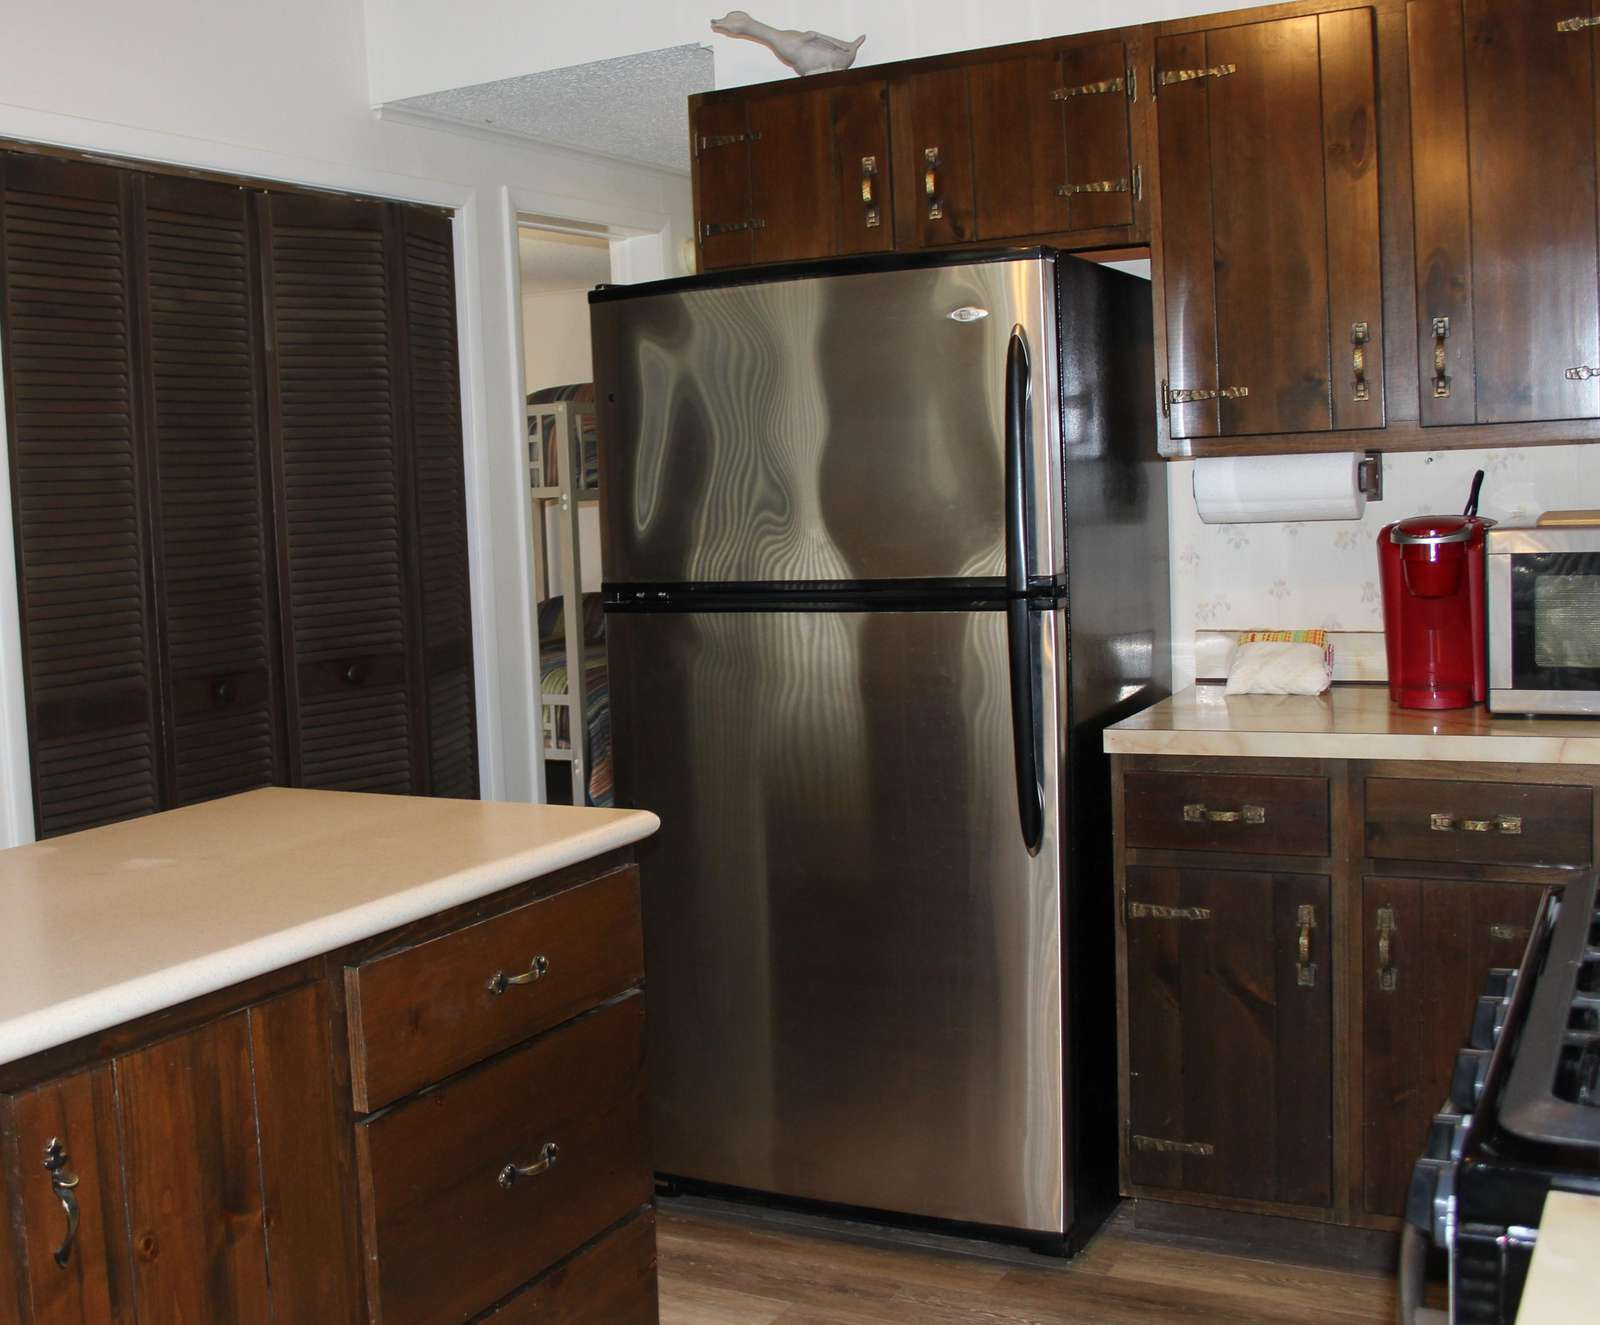 Kitchen with Stainless Steel Refrigerator and Island